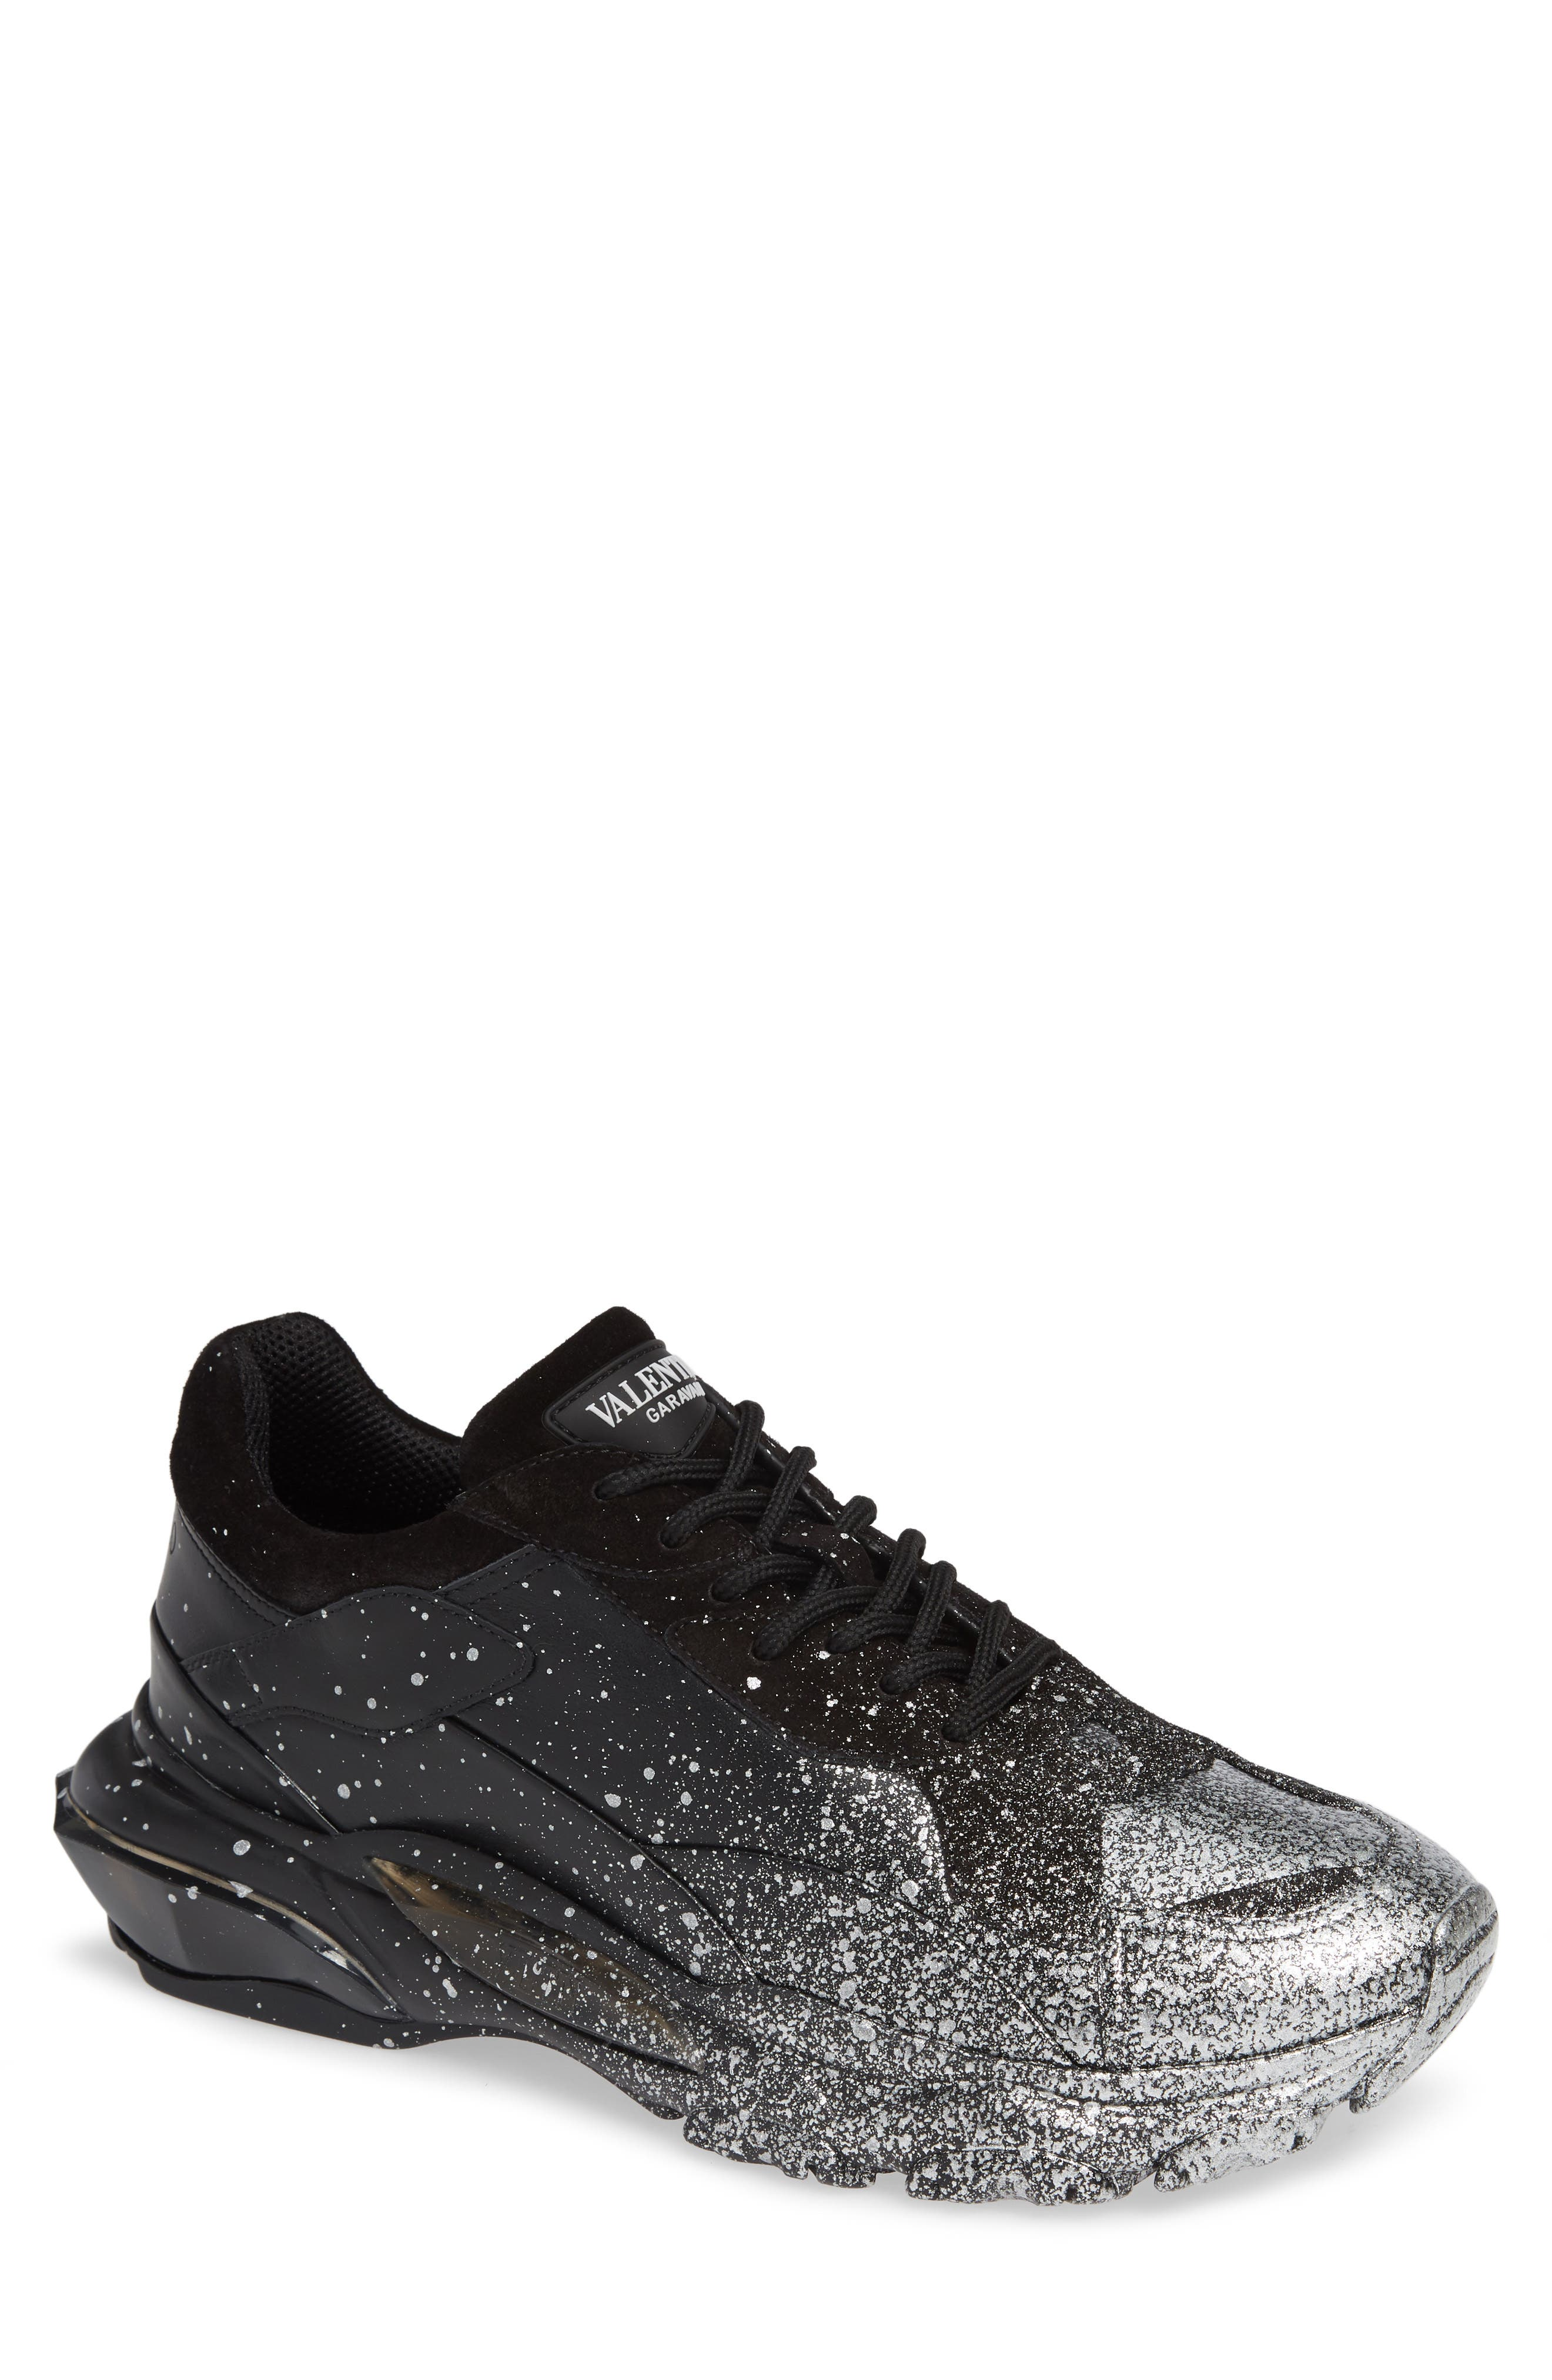 Bounce Paint Splatter Sneaker,                         Main,                         color, BLACK/ SILVER